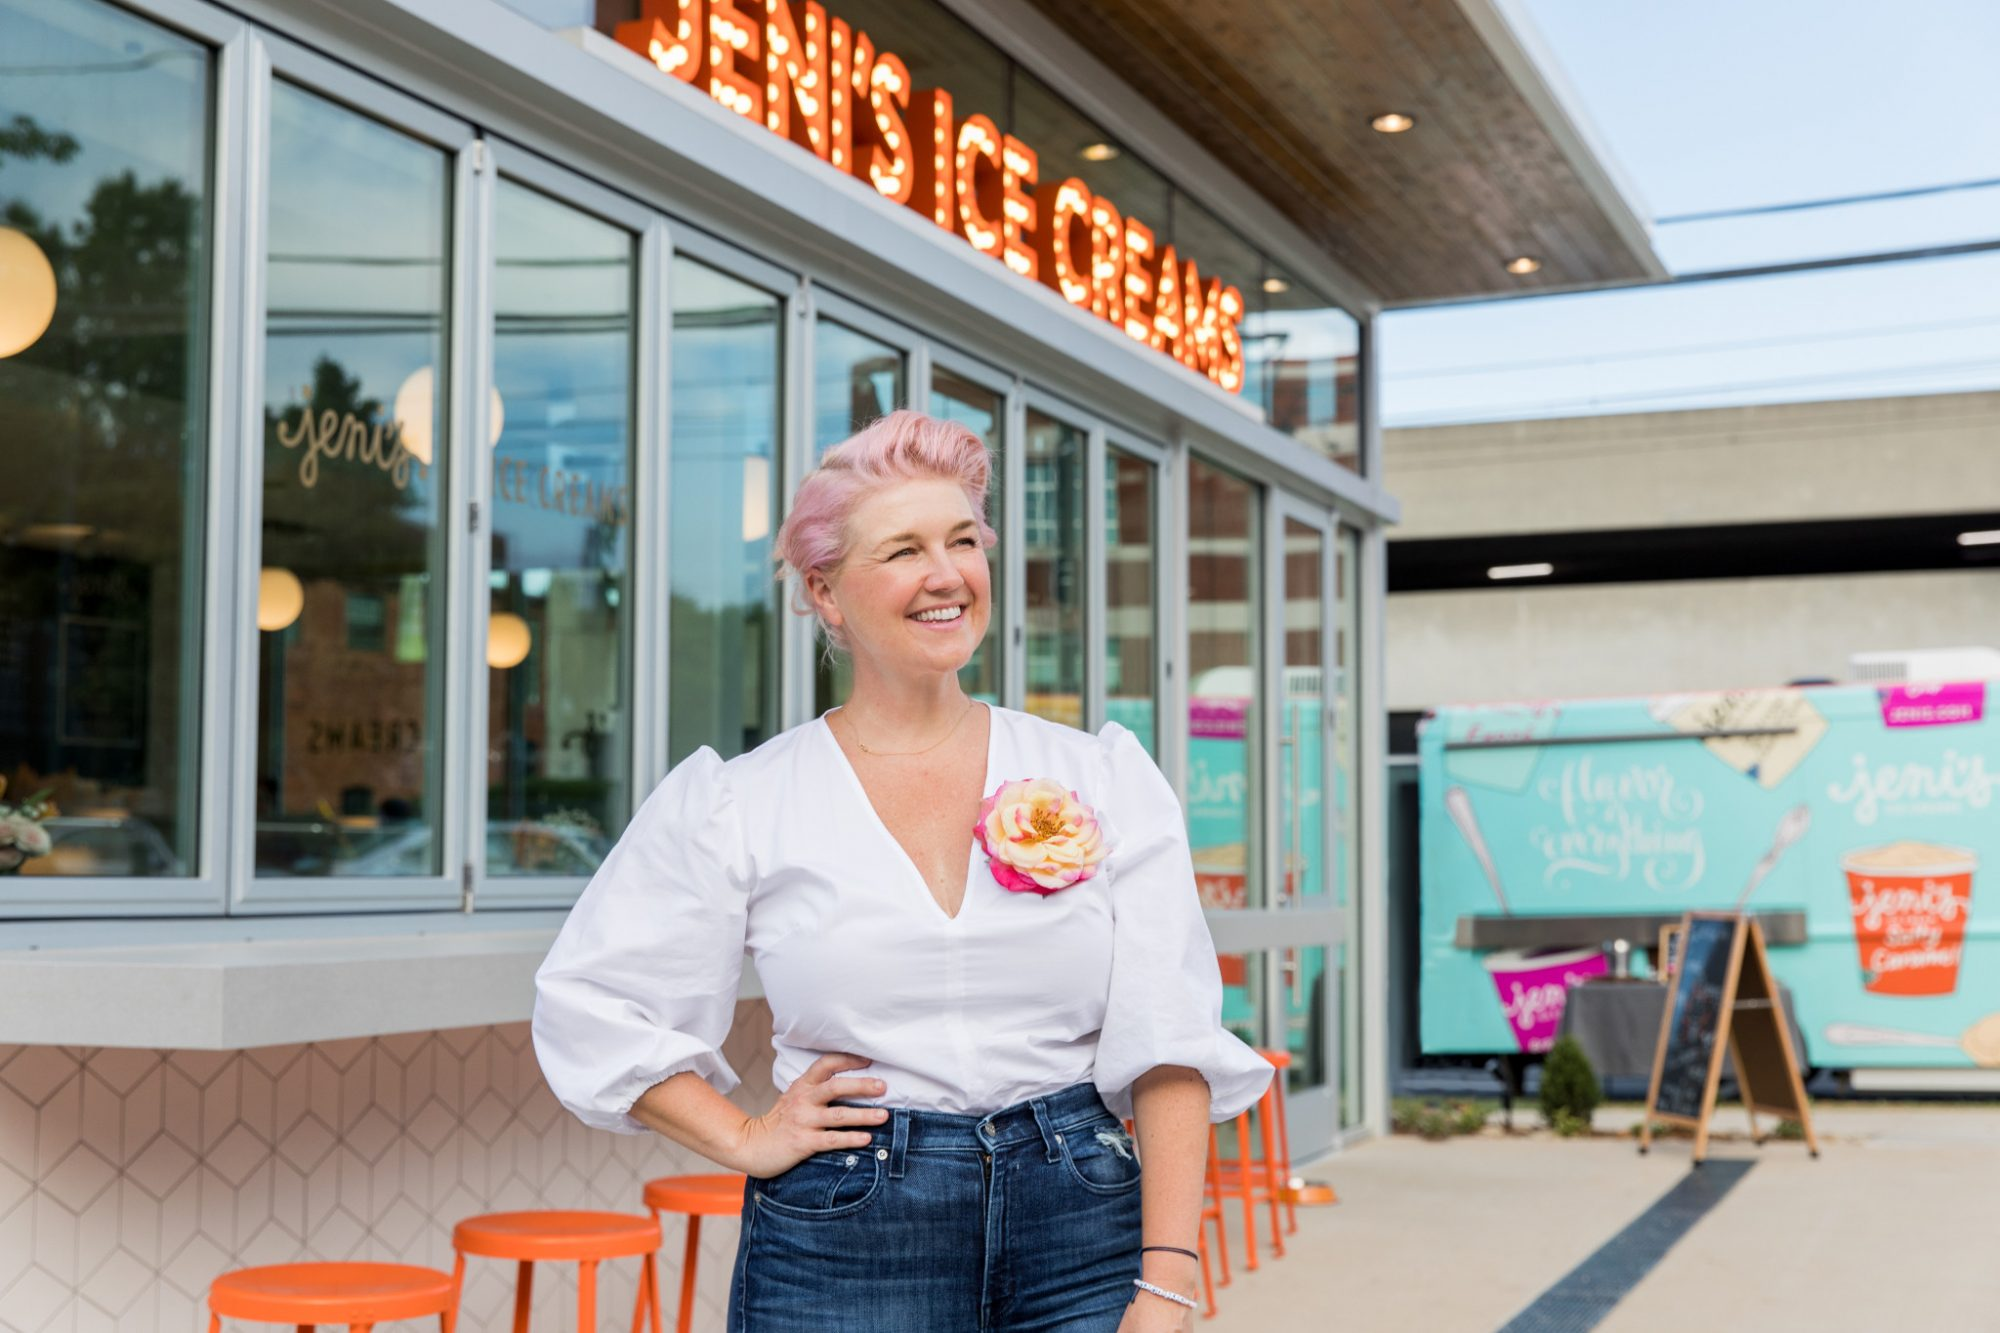 How to Make the Best Ice Cream at Home, According to the Founder of Jeni's